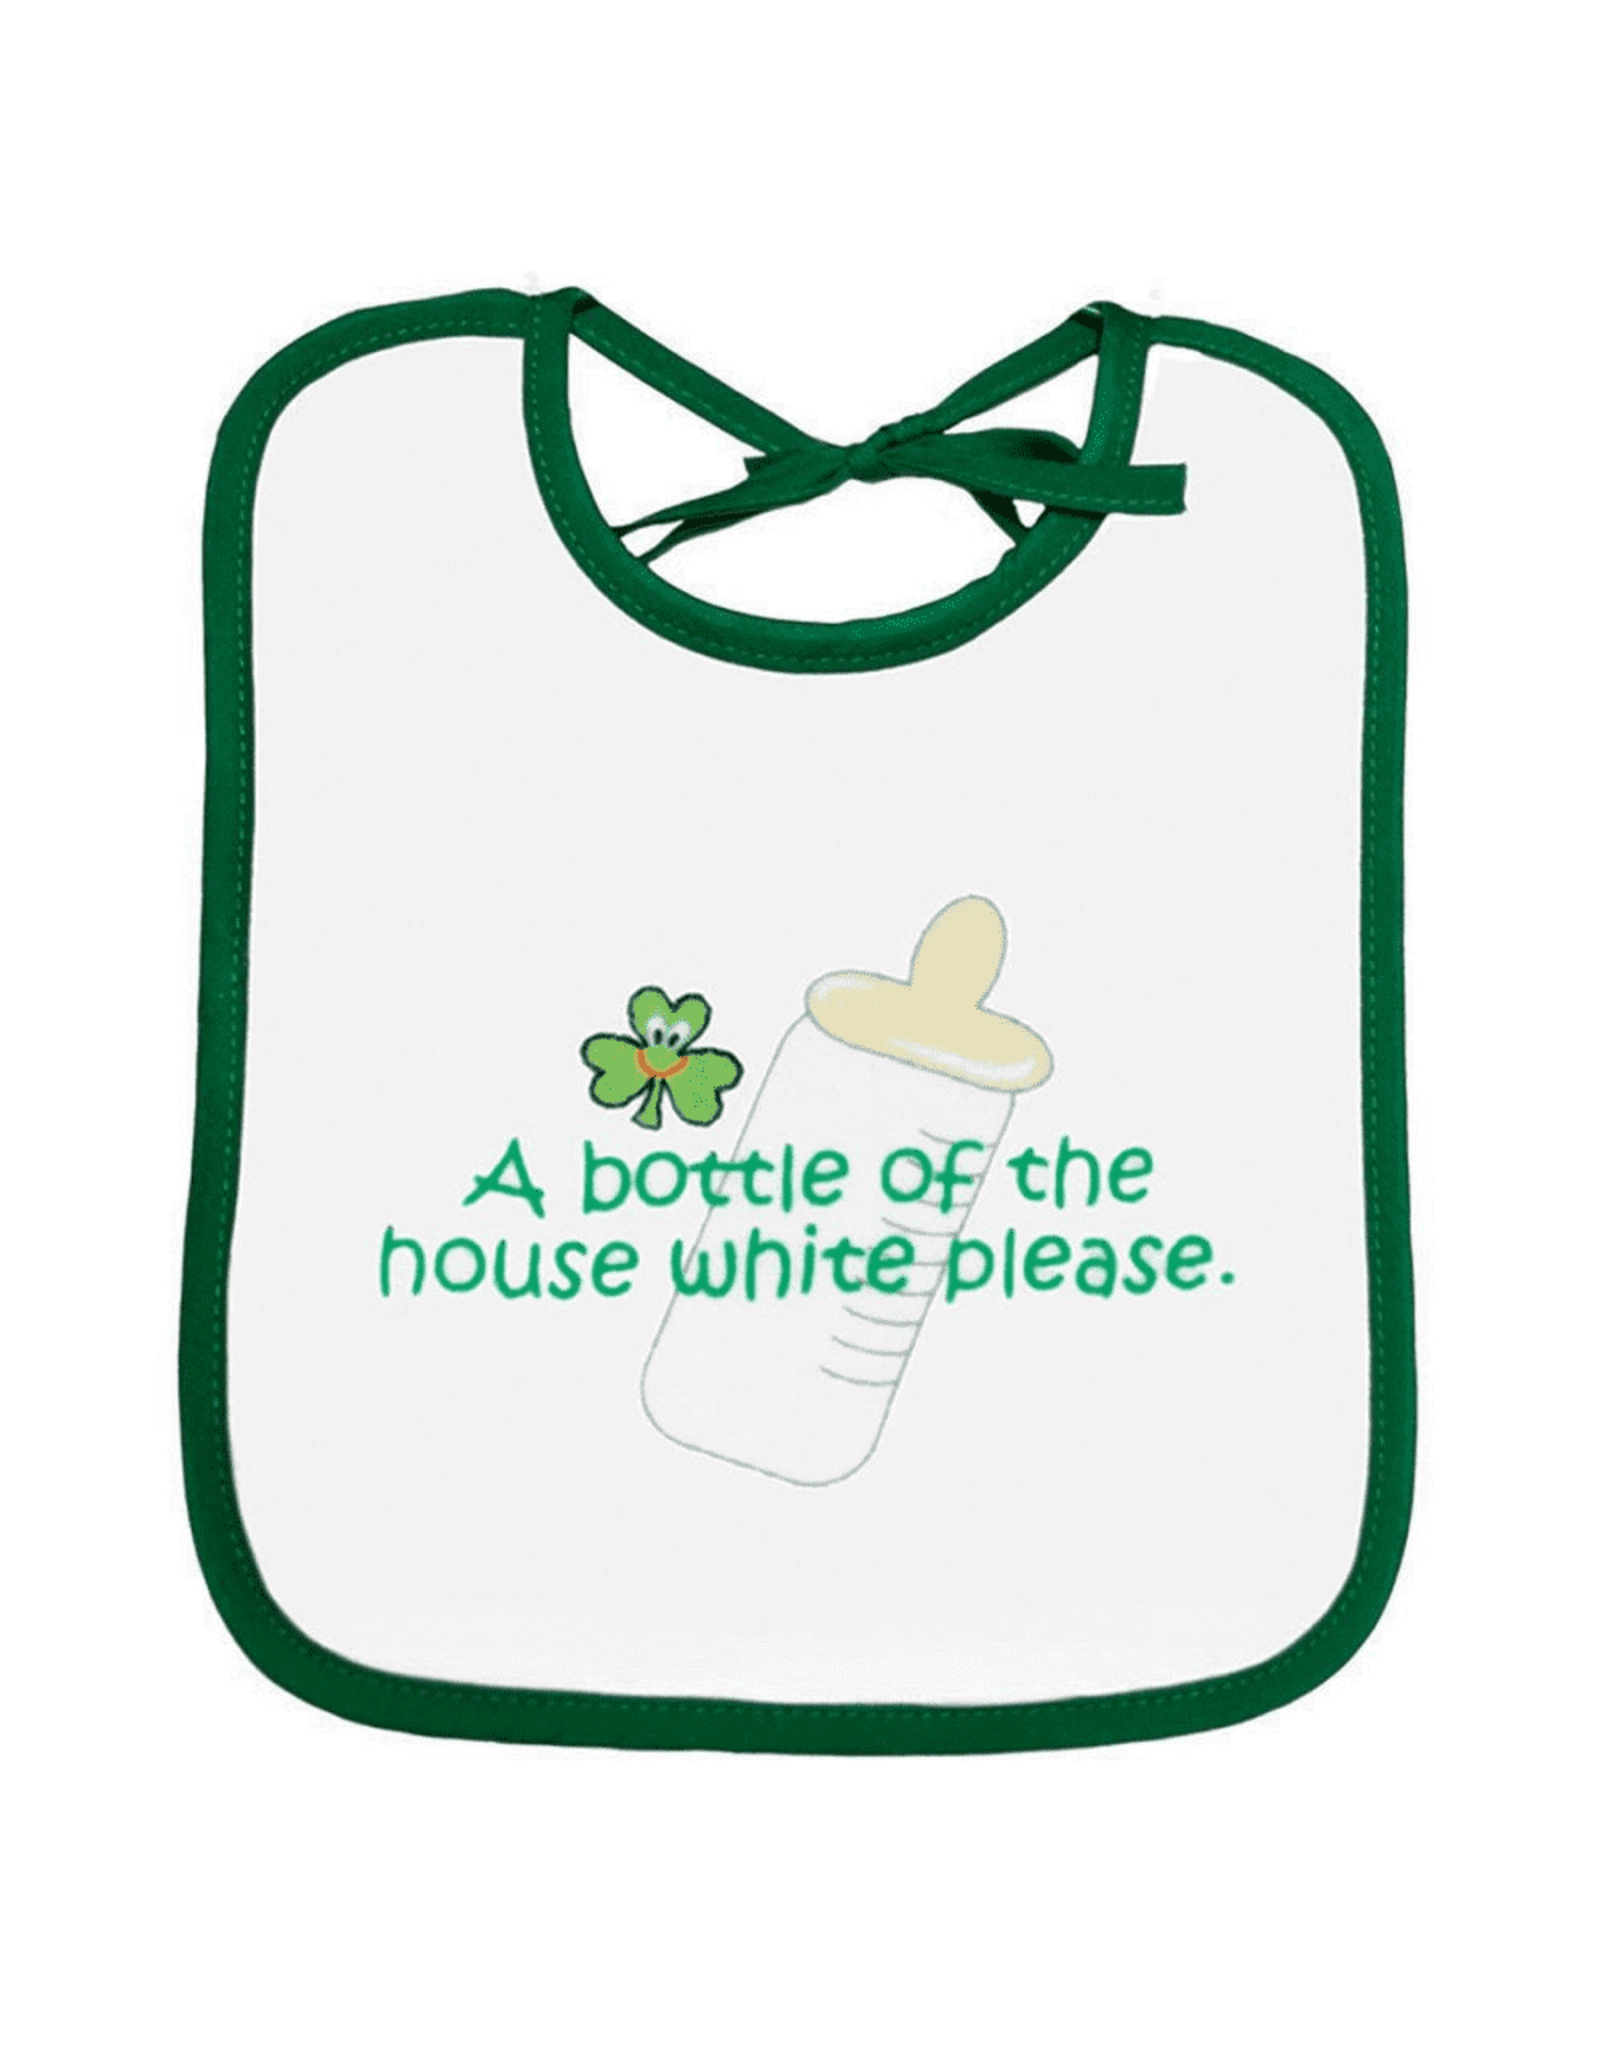 A Bottle of the House White Bib